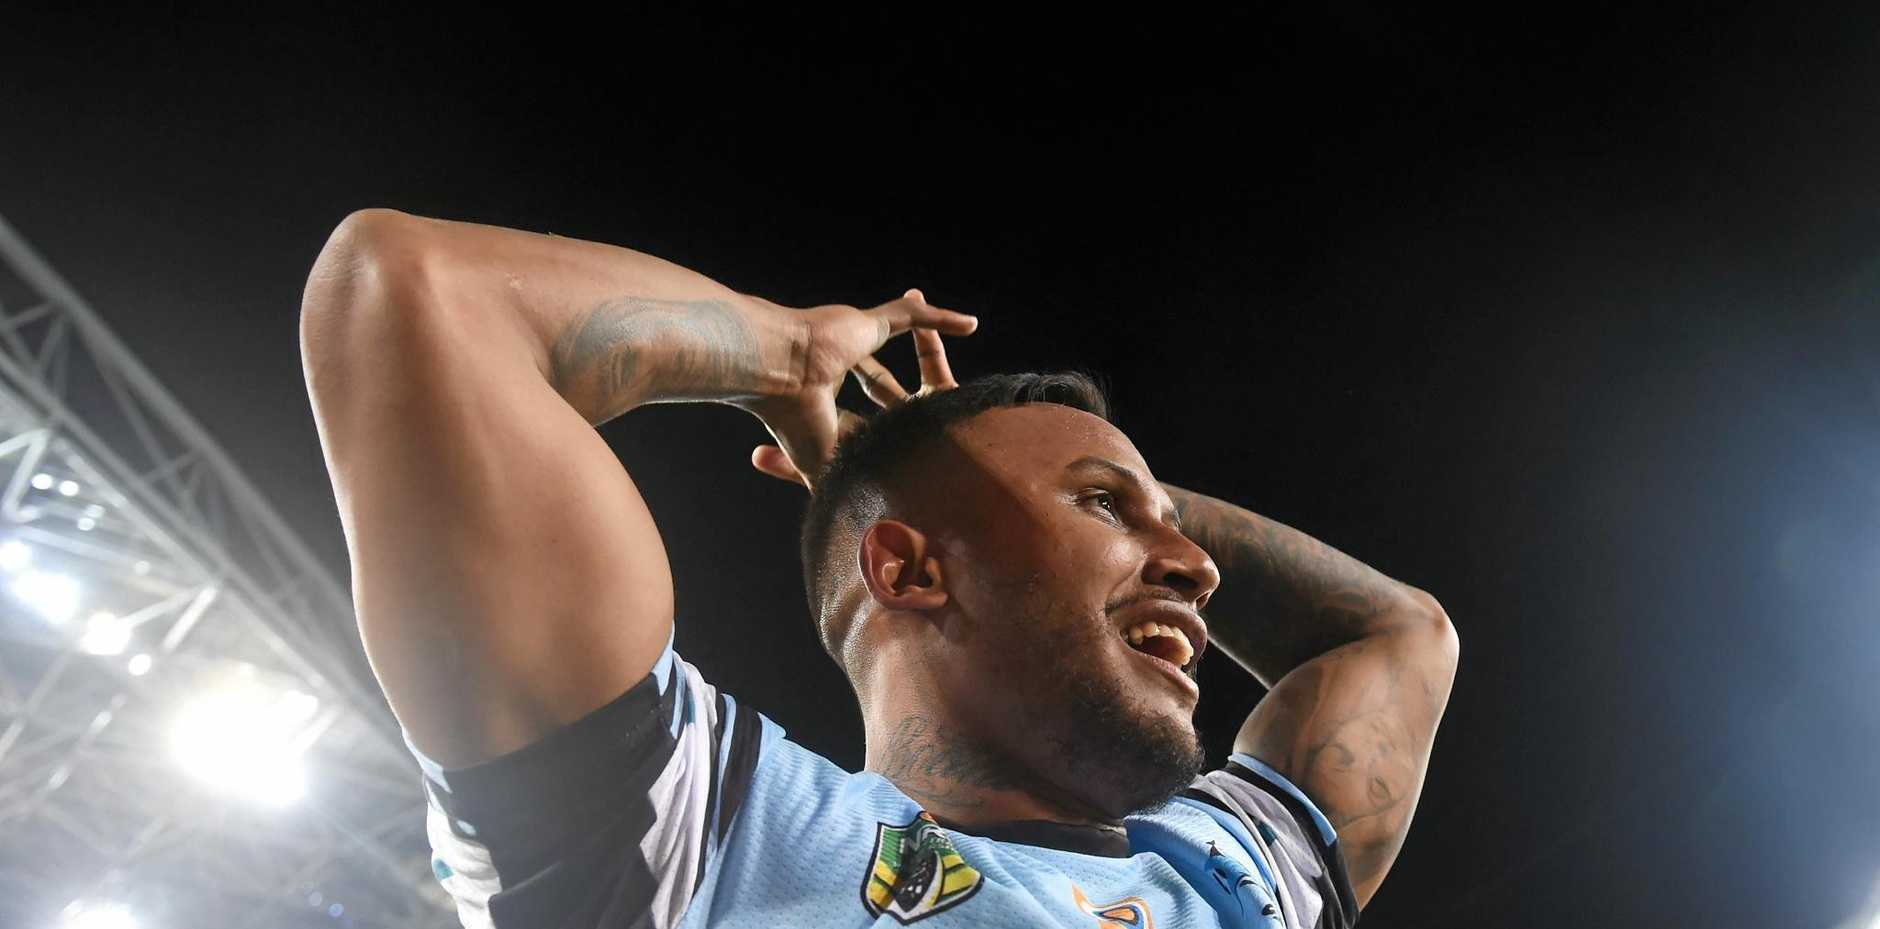 Ben Barba celebrates following the Sharks' win in the 2016 NRL grand final.